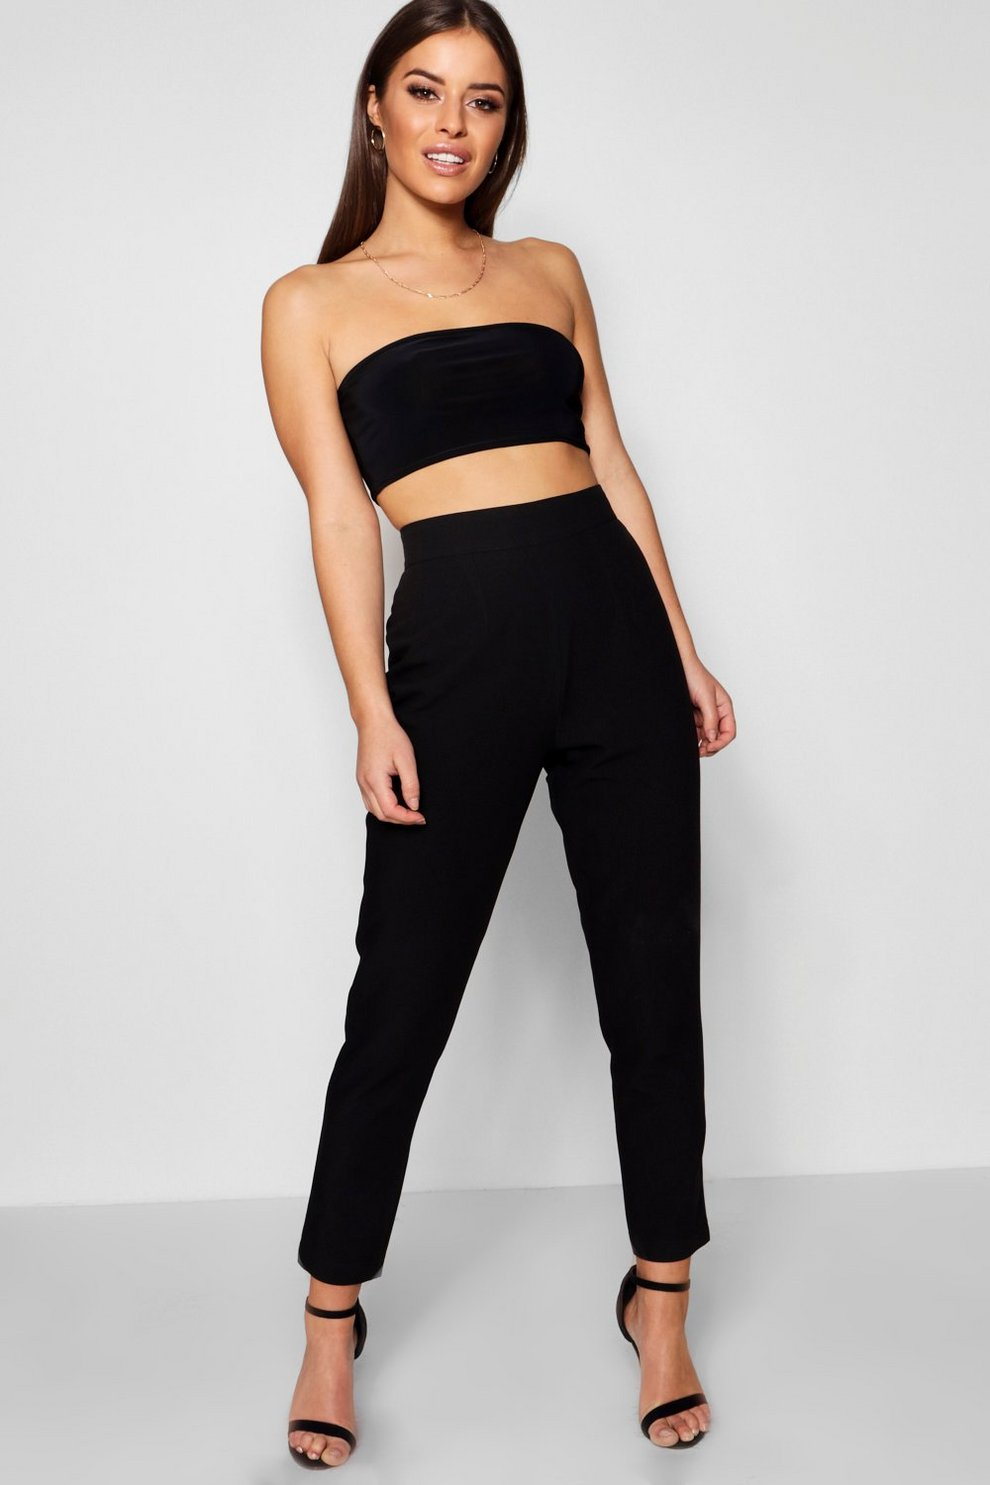 2018 Unisex Sale Online Boohoo Petite High Waisted Woven Tapered Trouser Clearance Footlocker Pictures Inexpensive For Sale k2UzCak5J1